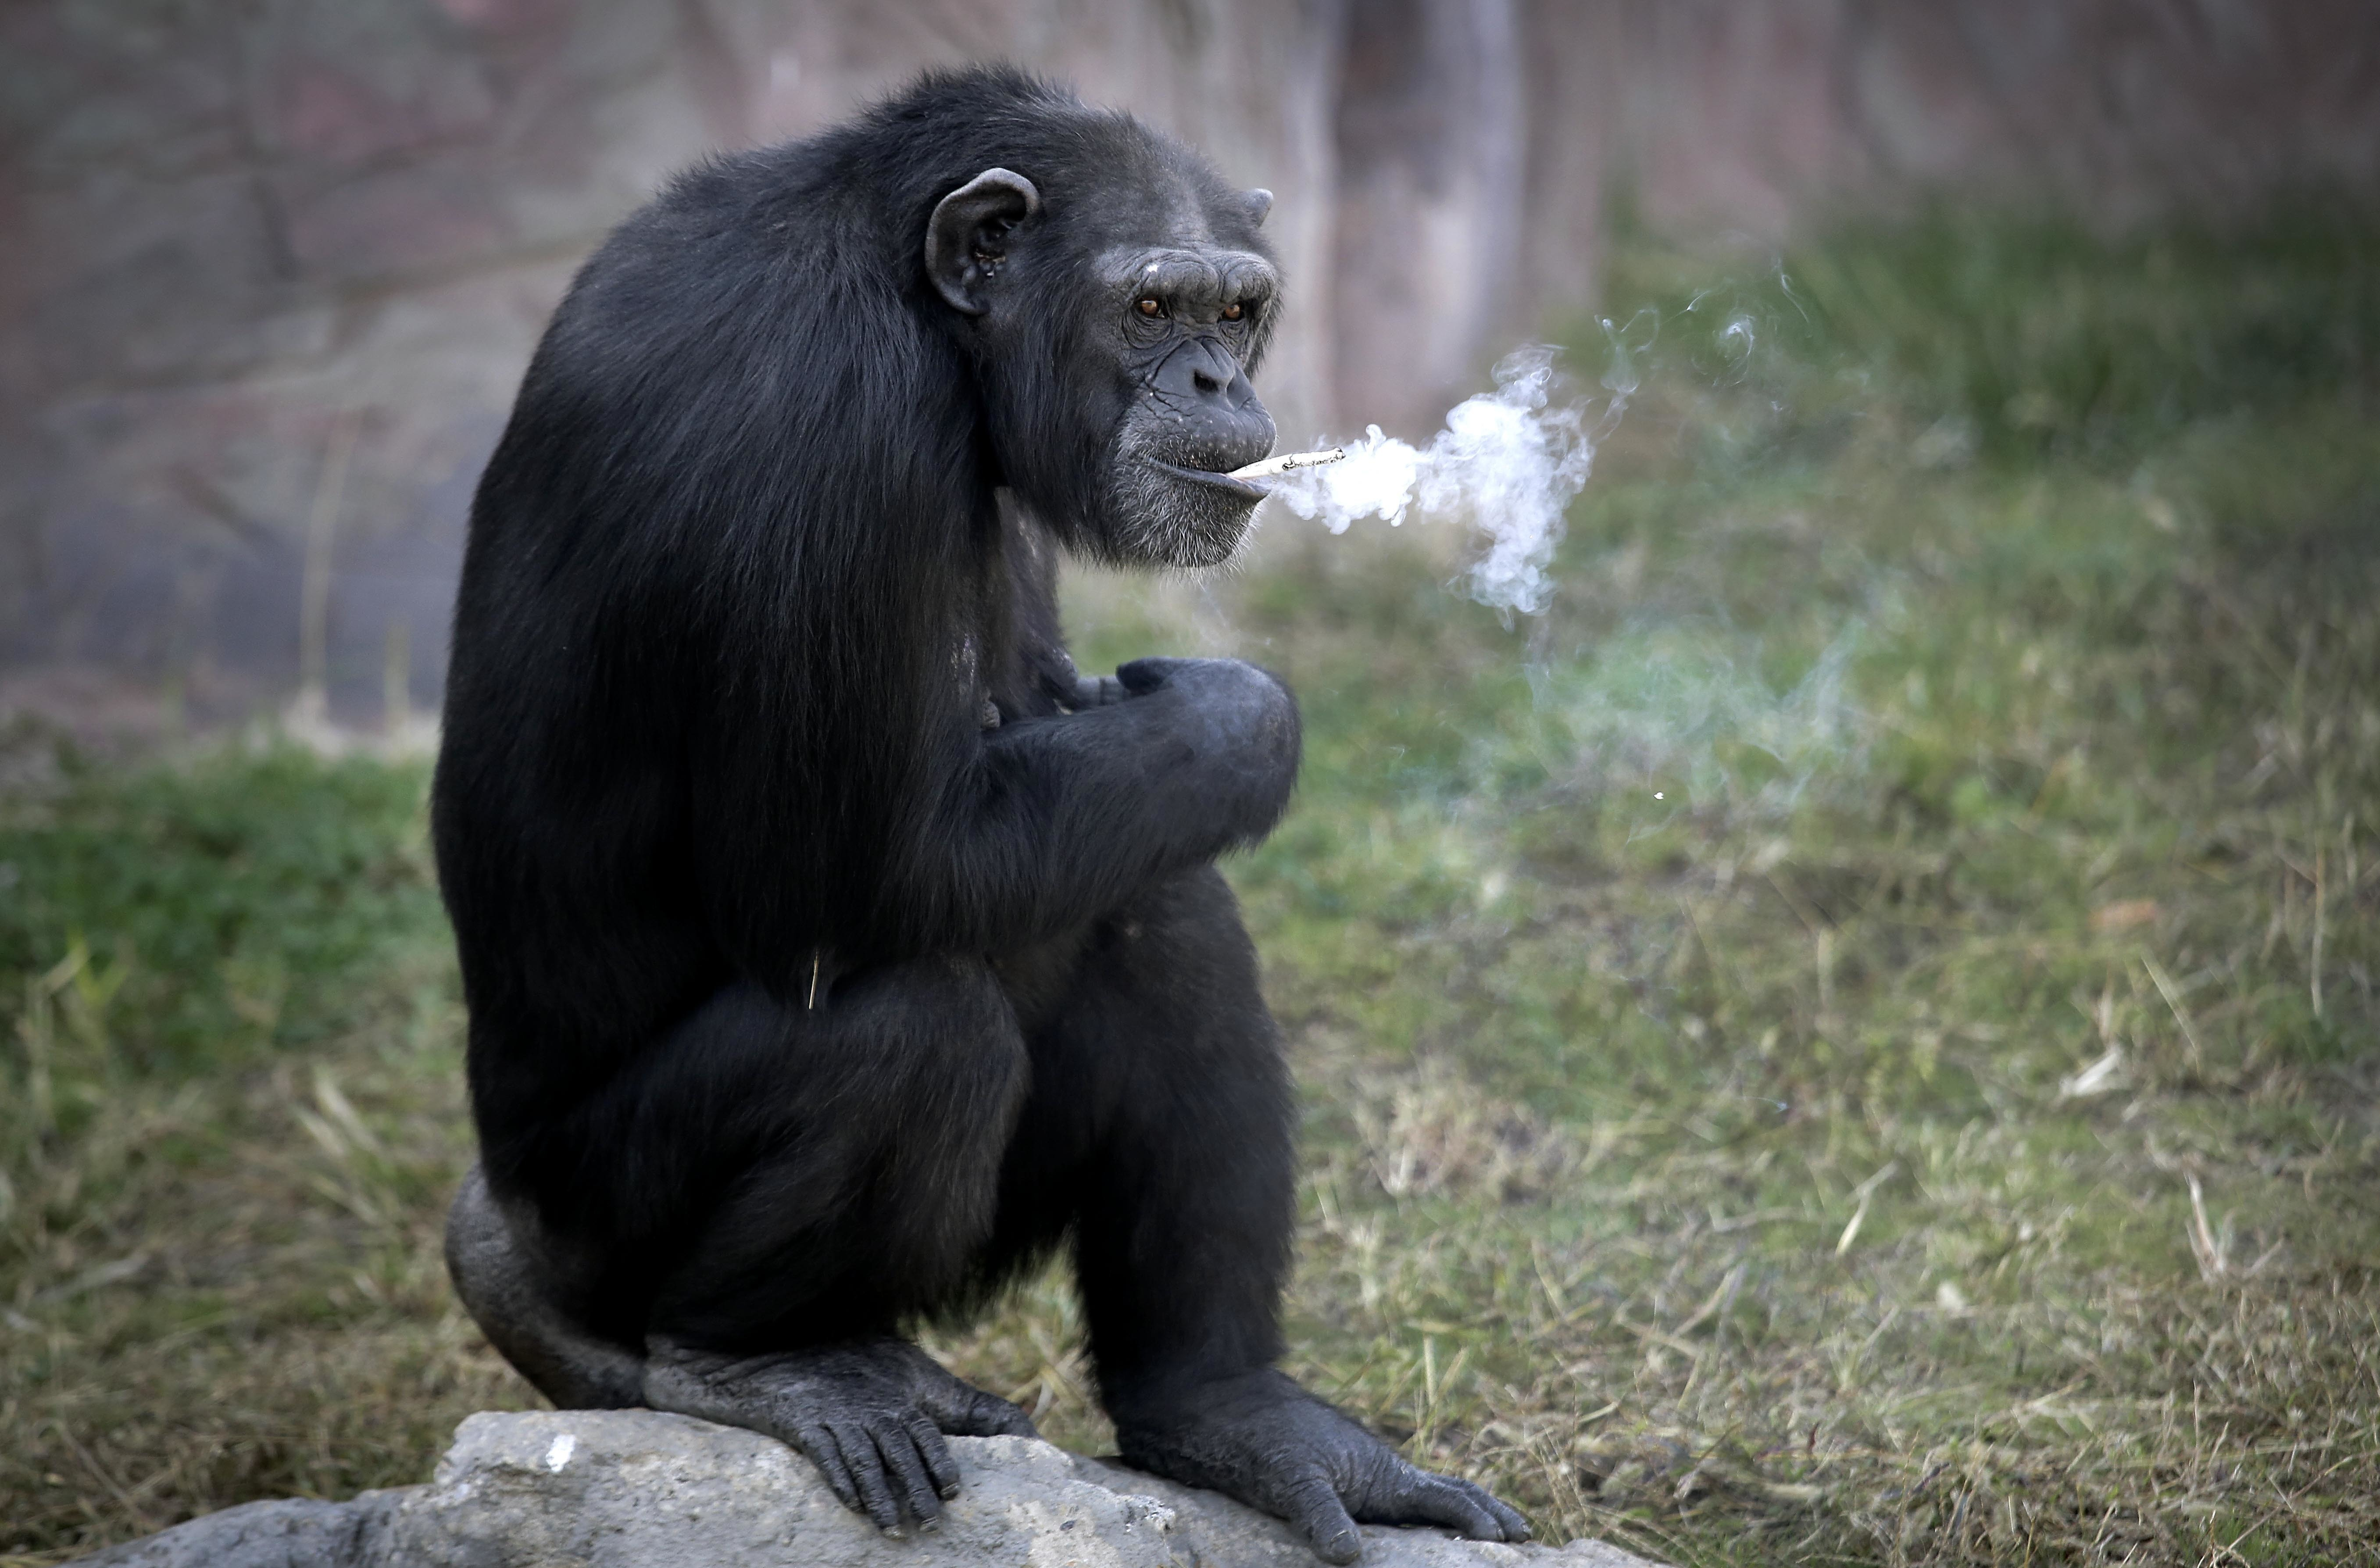 Azalea, a 19-year-old female chimpanzee whose Korean name is  Dallae,  smokes a cigarette at the Central Zoo in Pyongyang, North Korea, on Oct. 19, 2016.